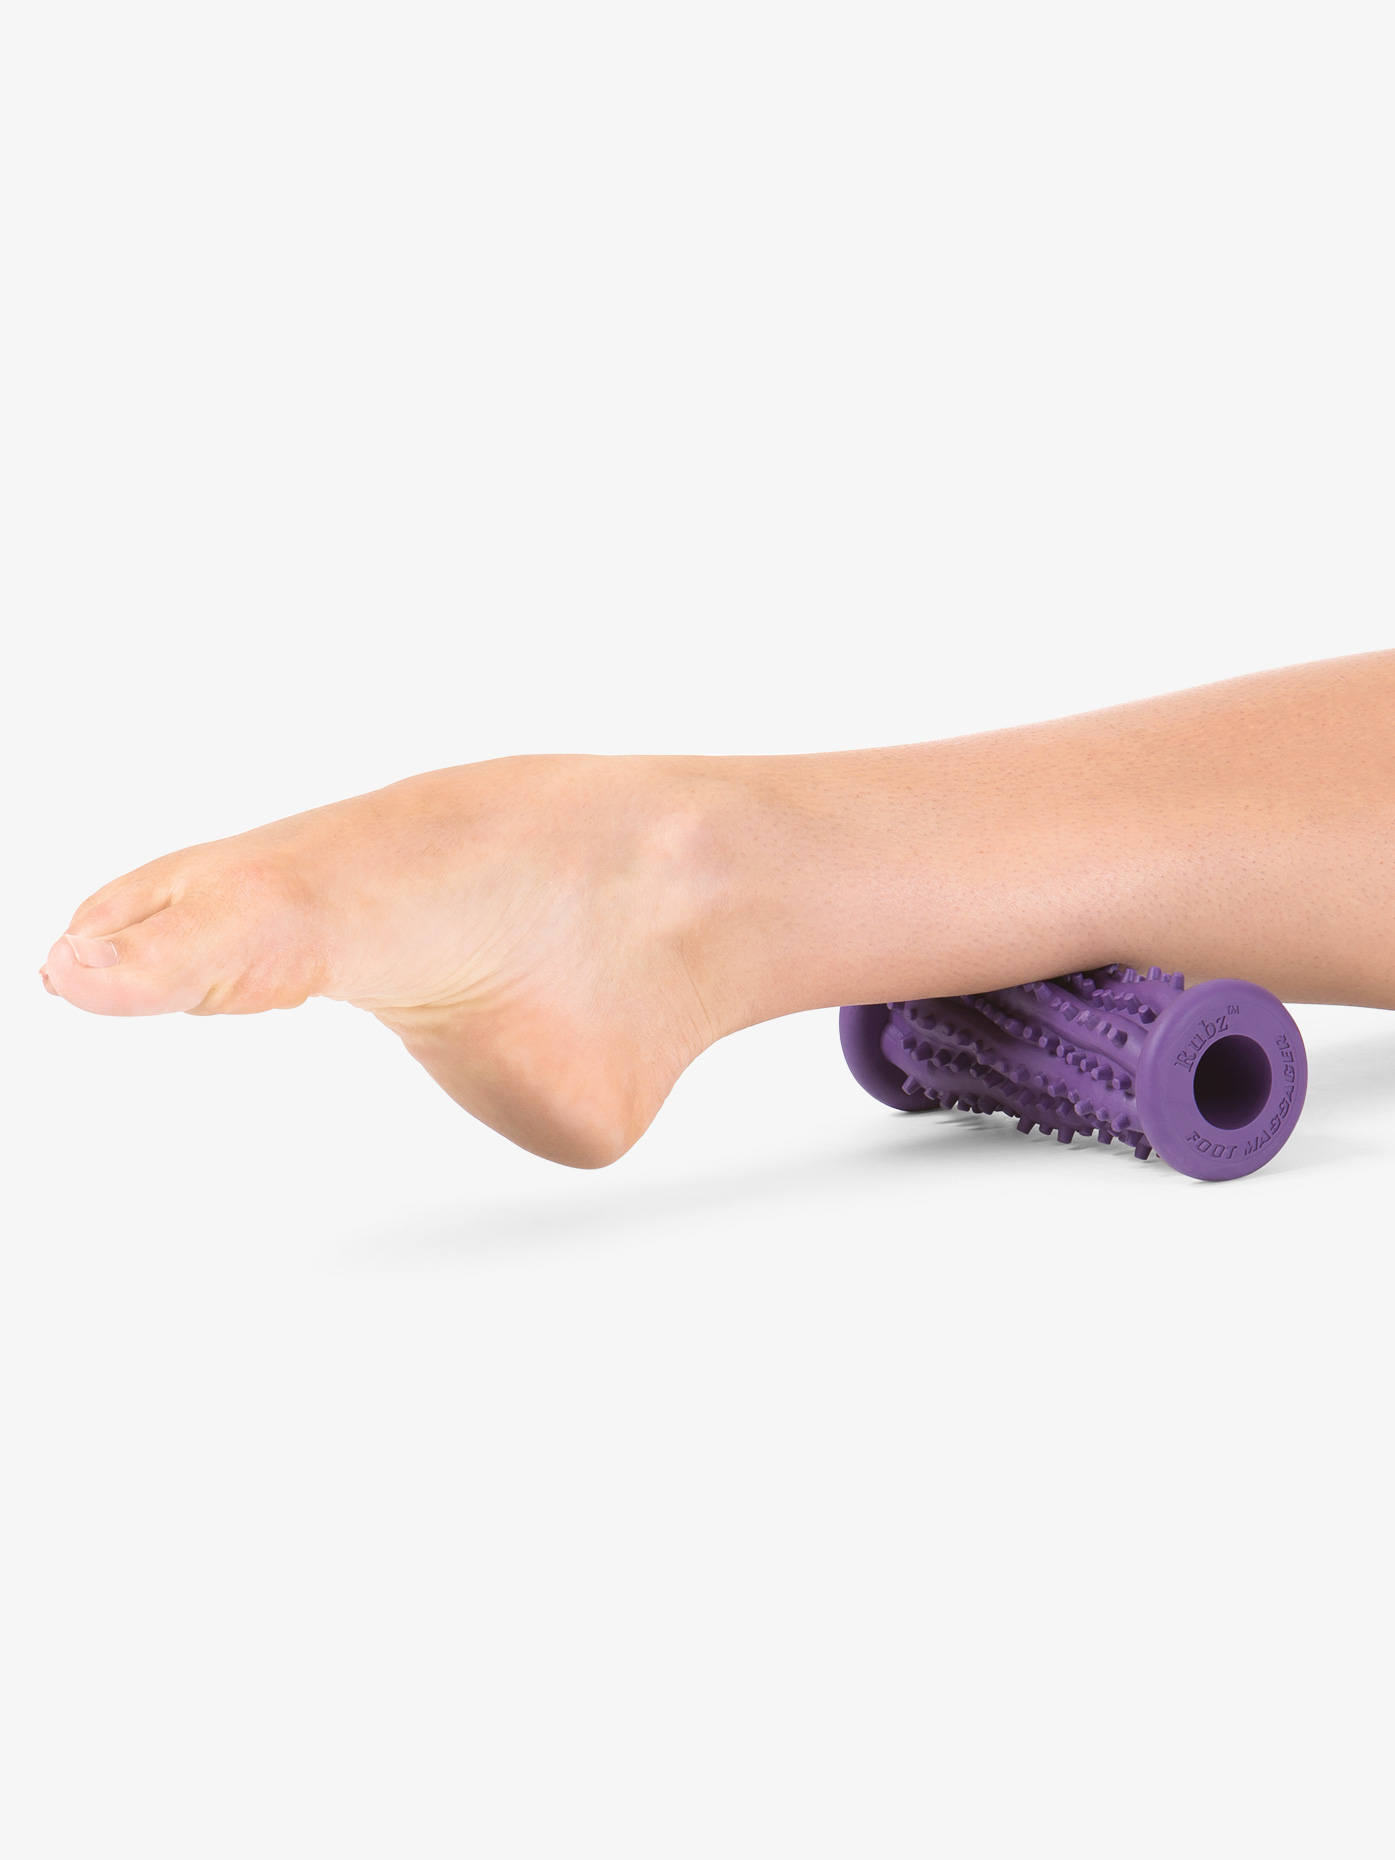 Sure Foot Foot Rubz Roller Massager FRM2